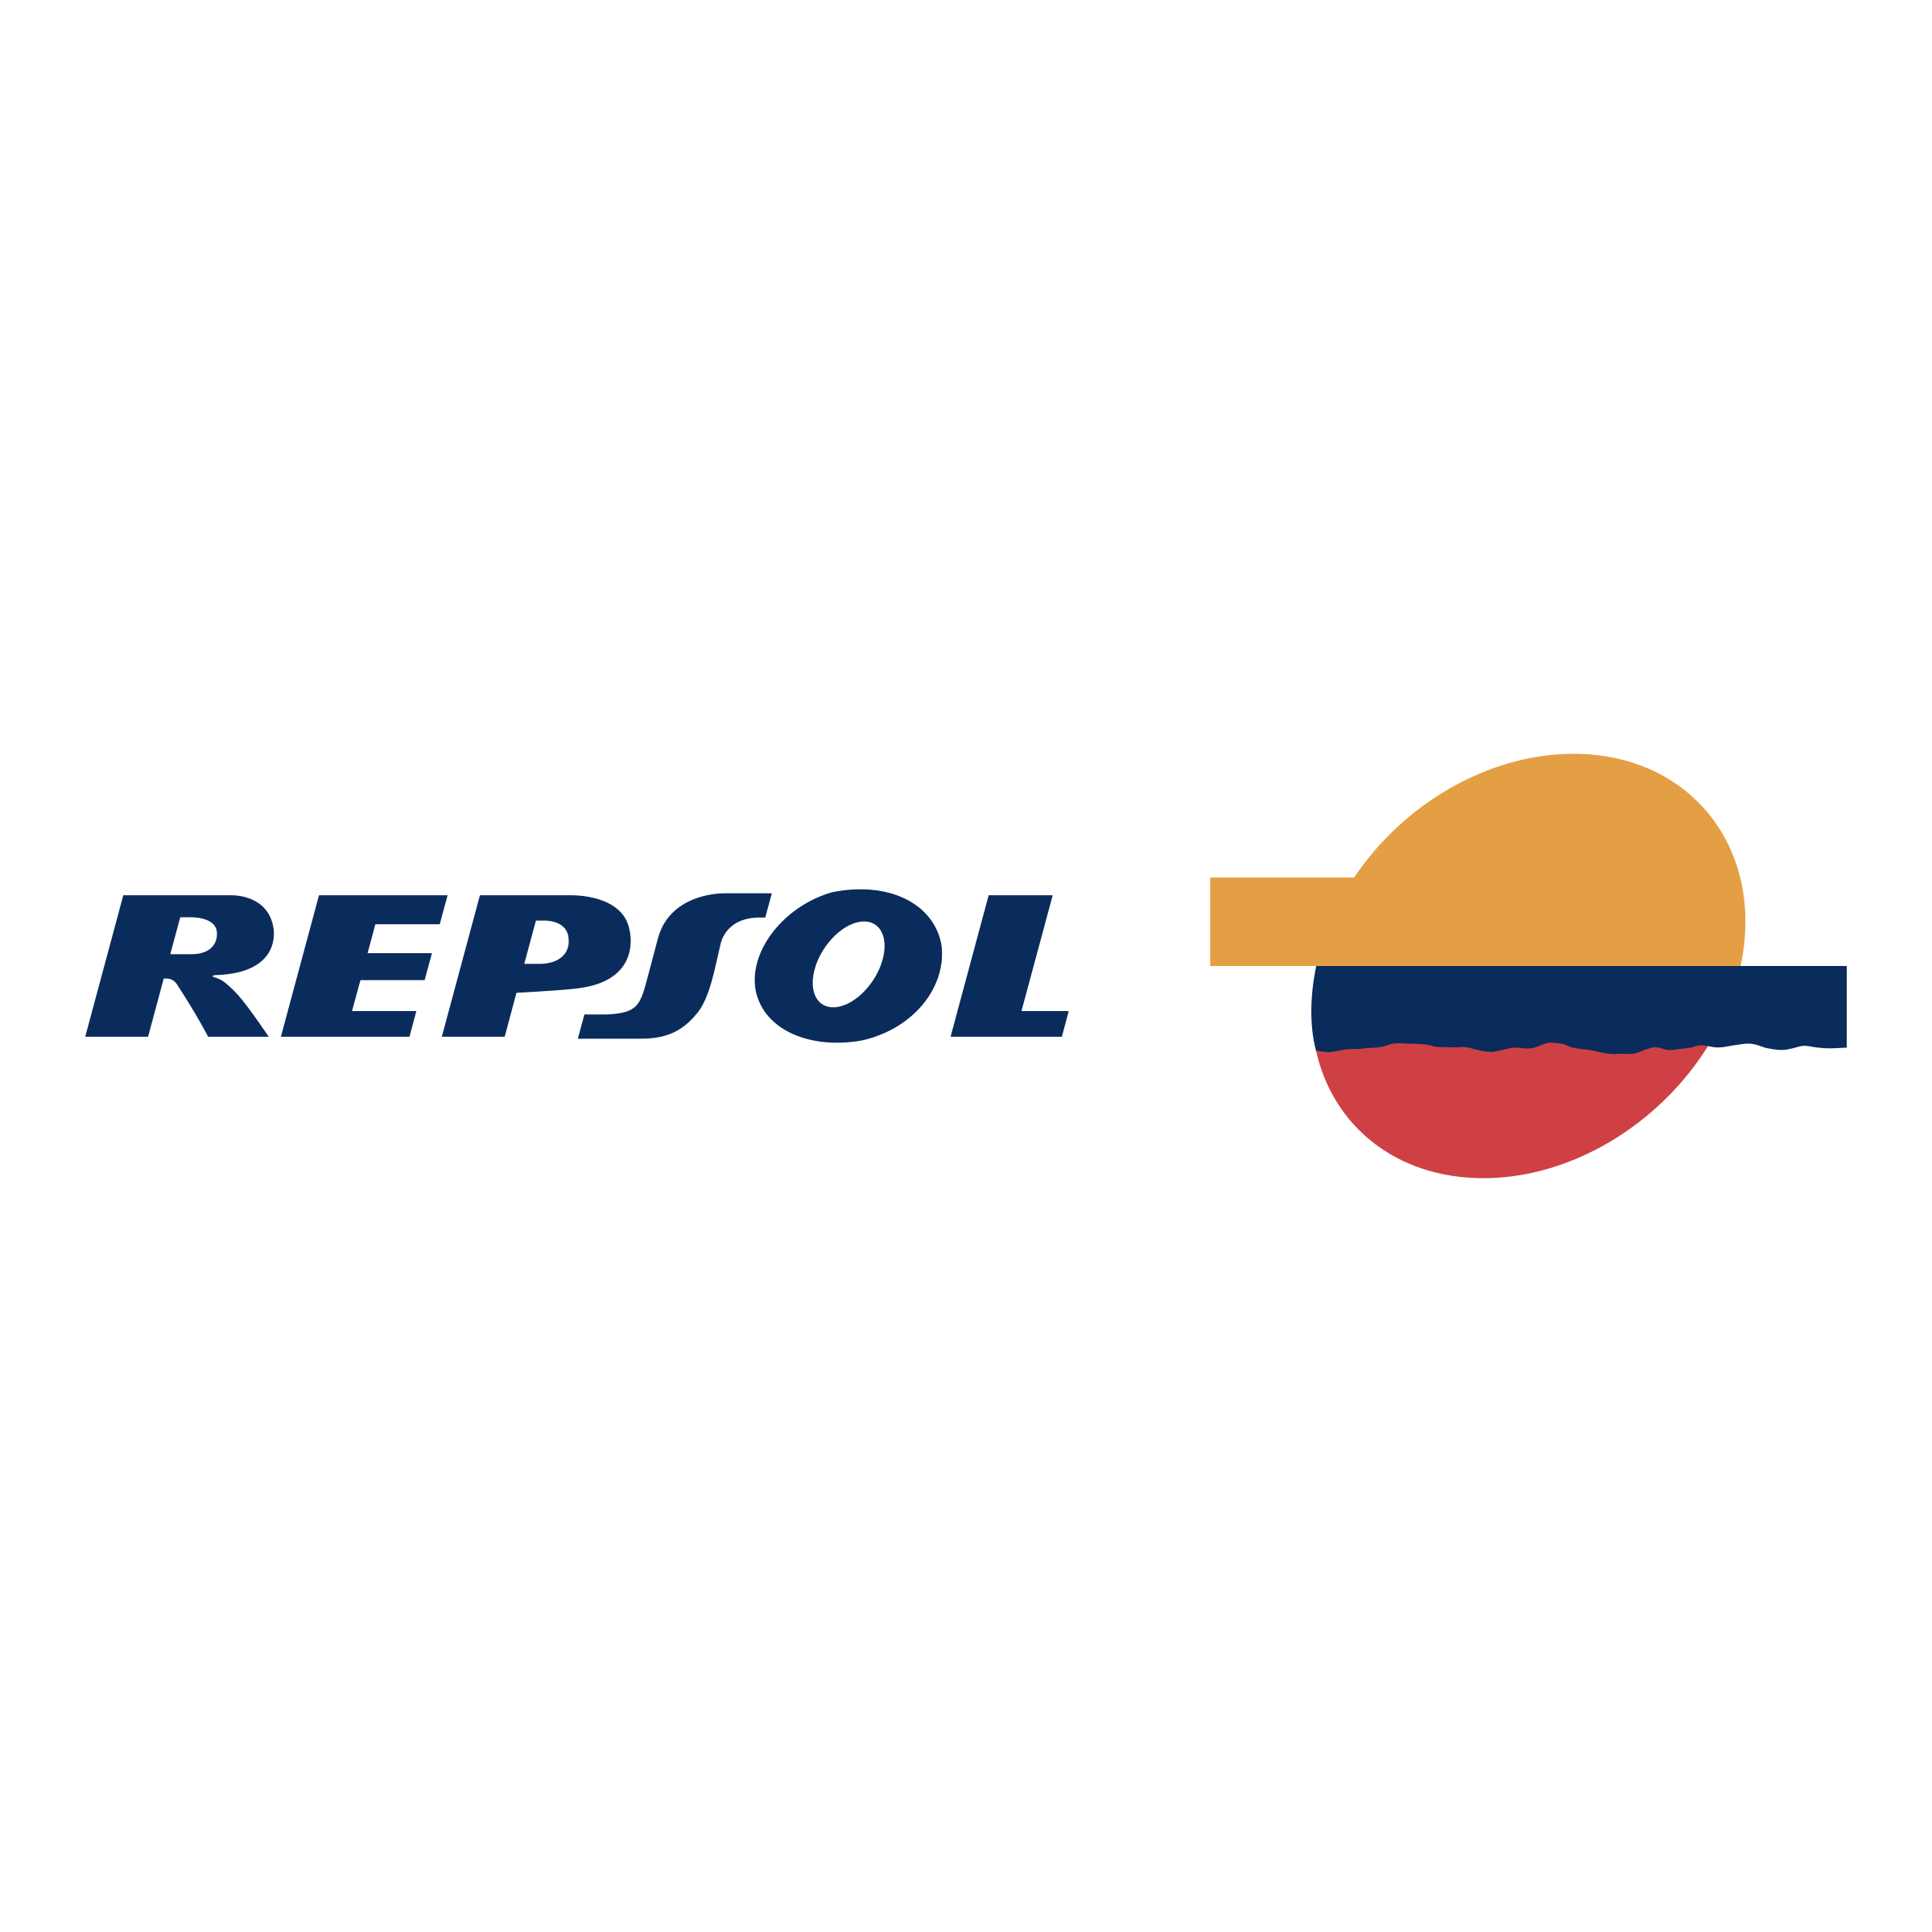 repsol logo png transparent svg vector freebie supply rh freebiesupply com repsol logo eps repsol logo ai